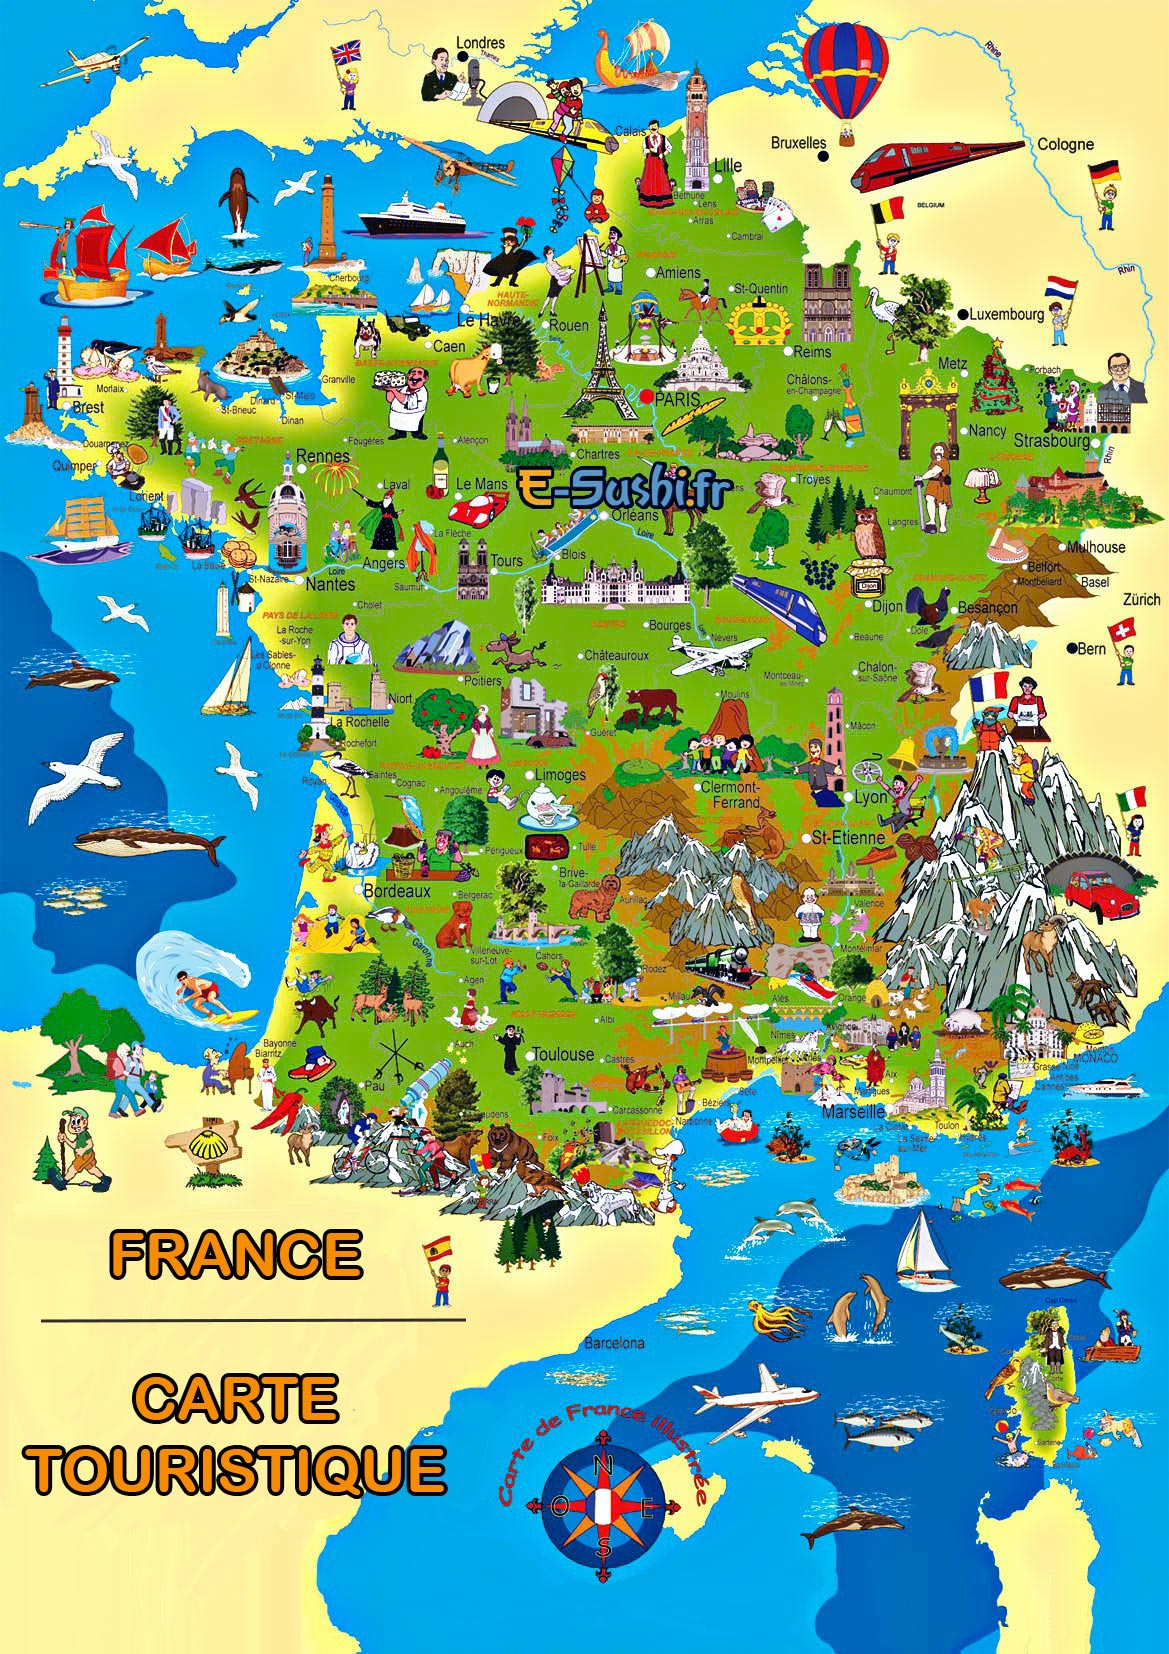 Carte Touristique Sud De La France | My blog